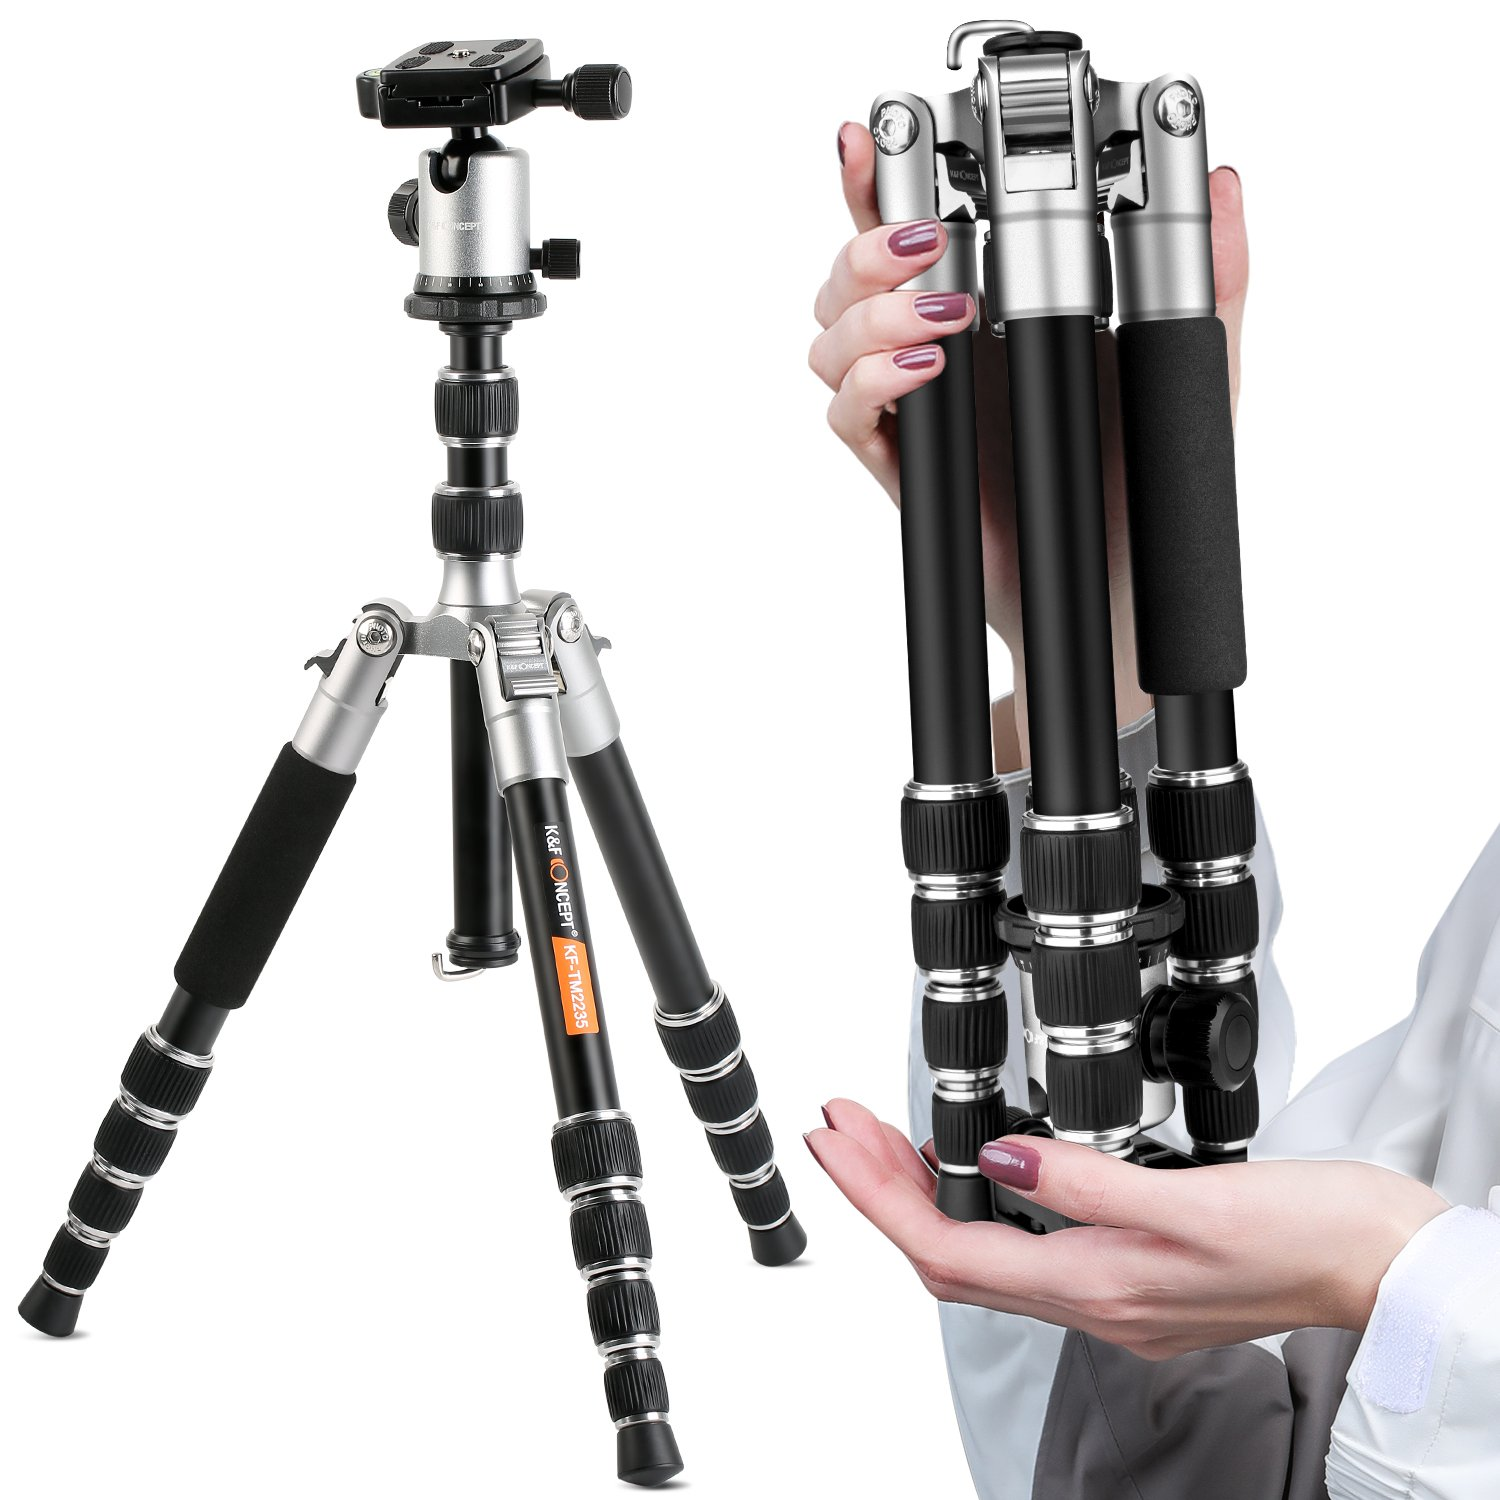 K&f Concept Compact Camera Tripod, 50 inch Lightweight Travel Tripod with Professional 360° Panorama Ball Head,1/4'' Quick Release Plates for DSLR DV Canon Nikon Sony (TM2235)